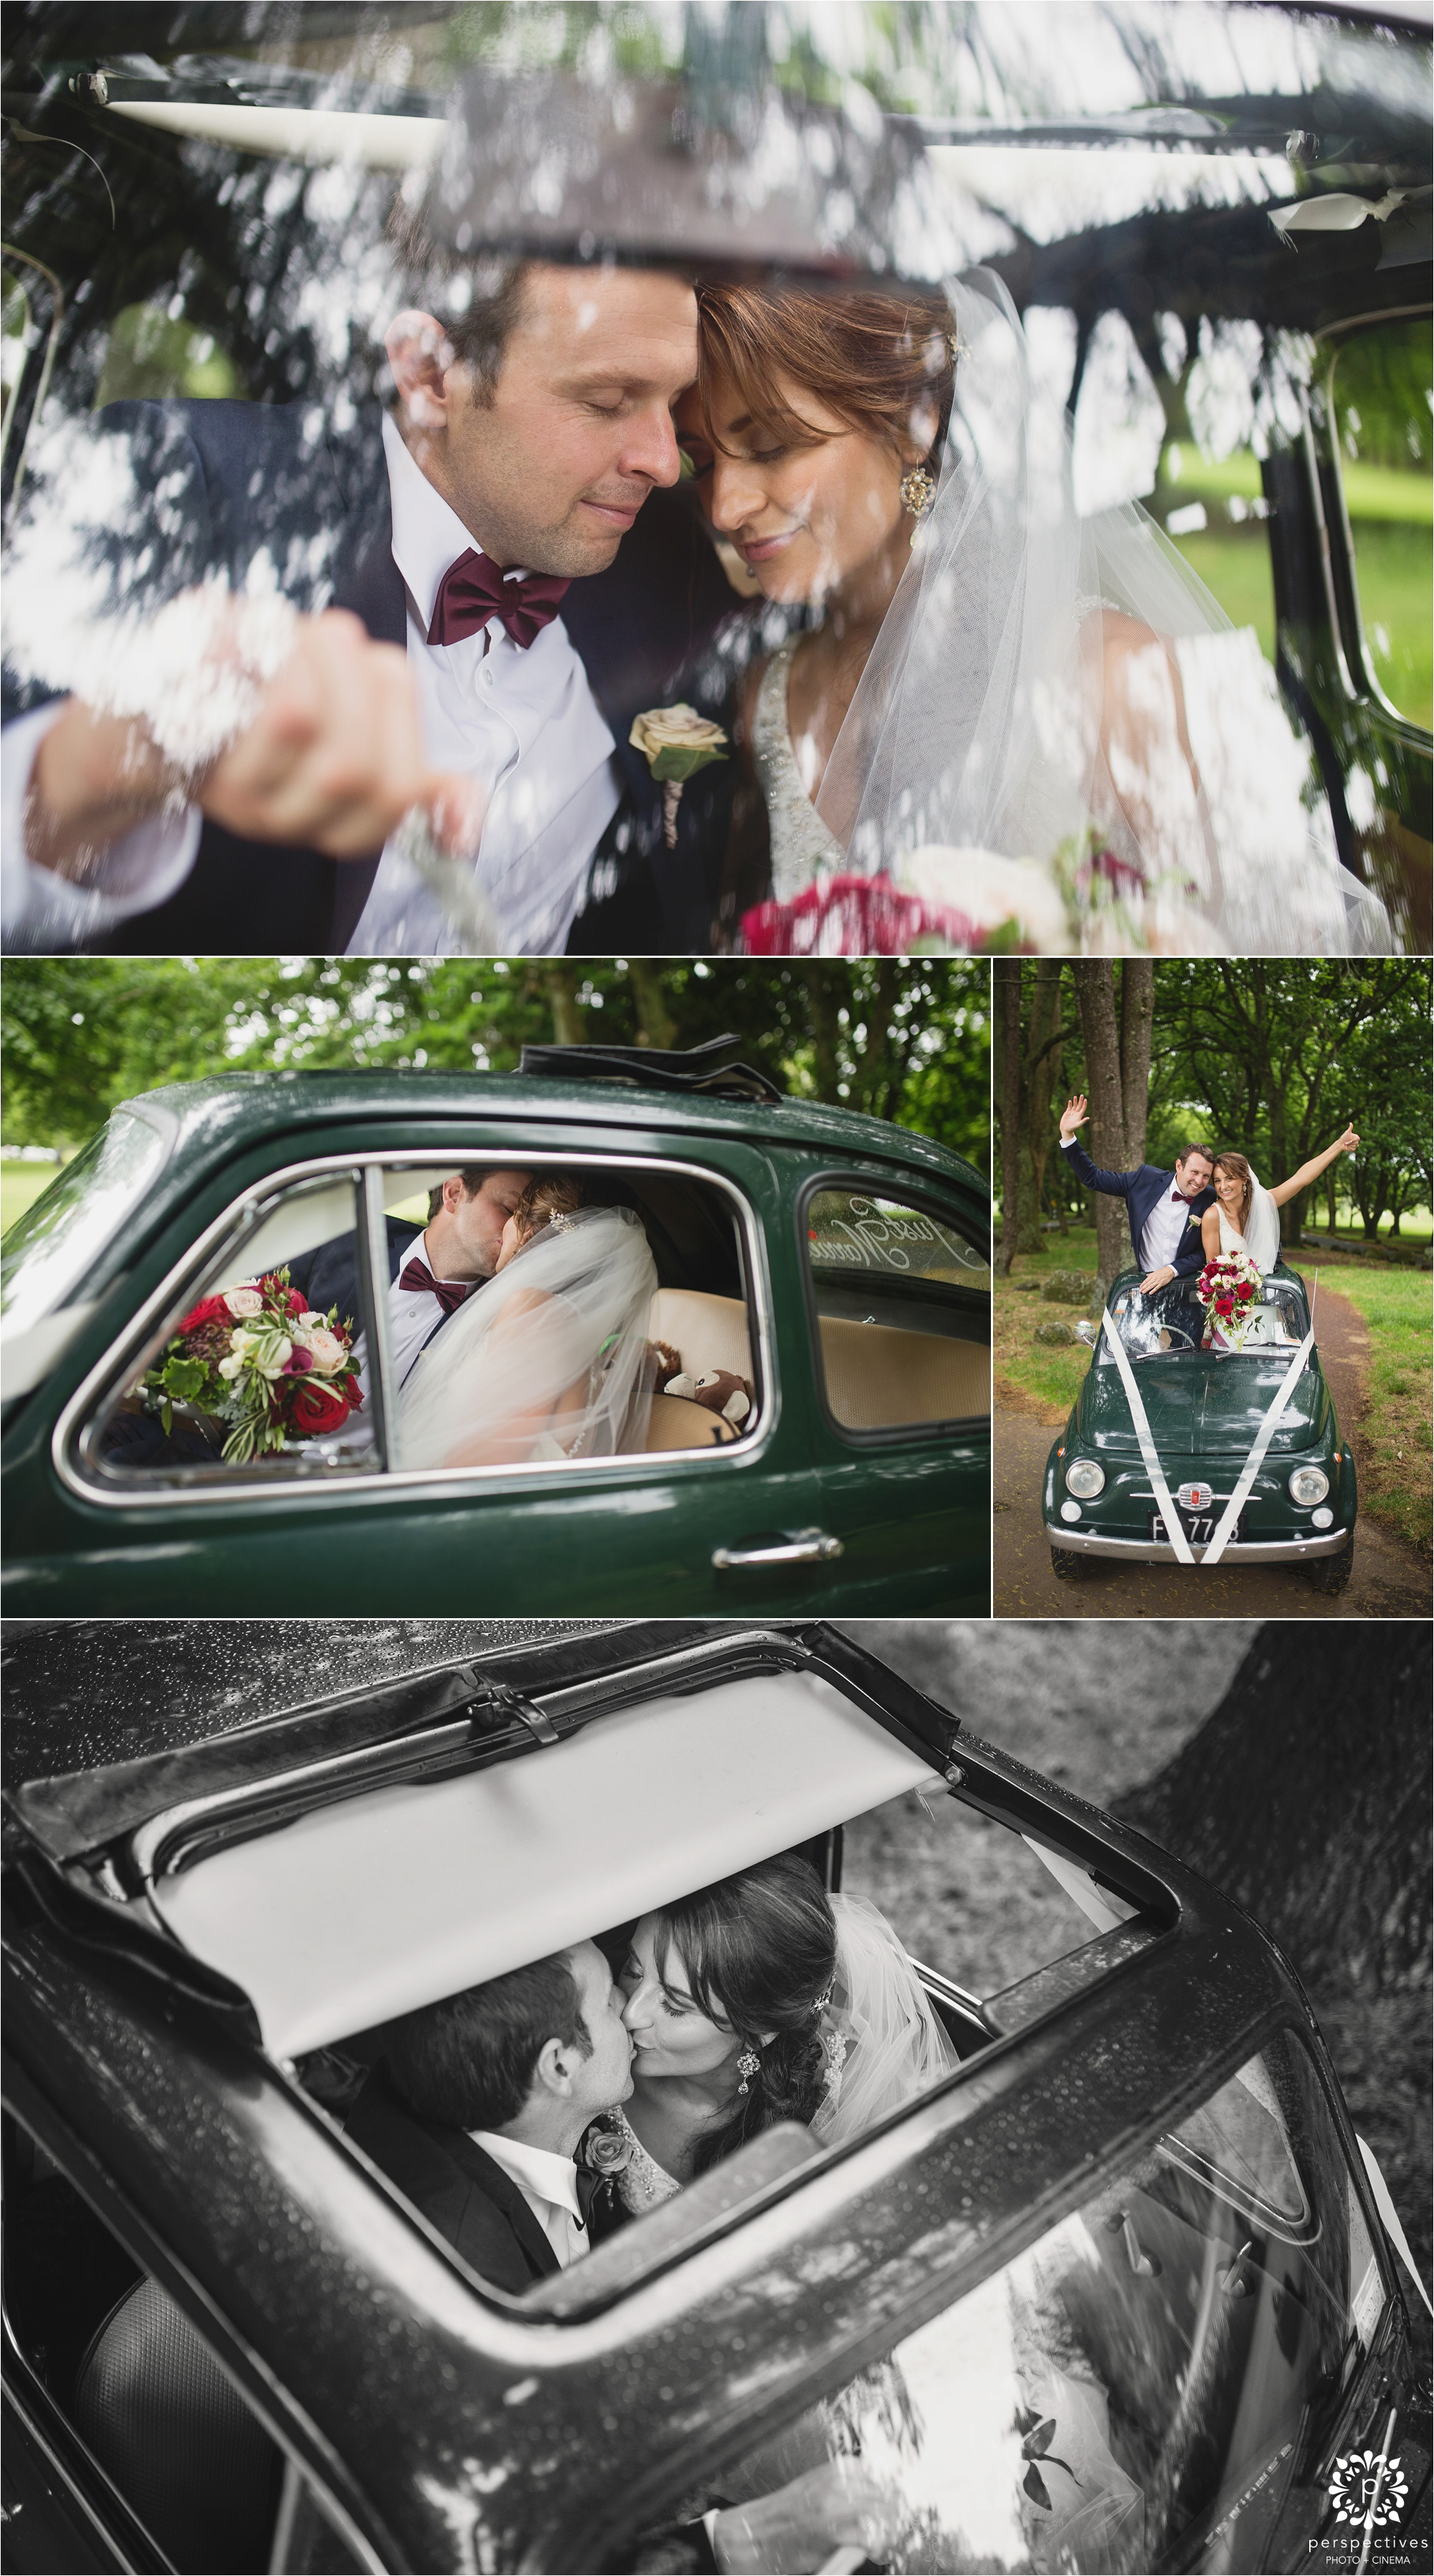 cute wedding car photos